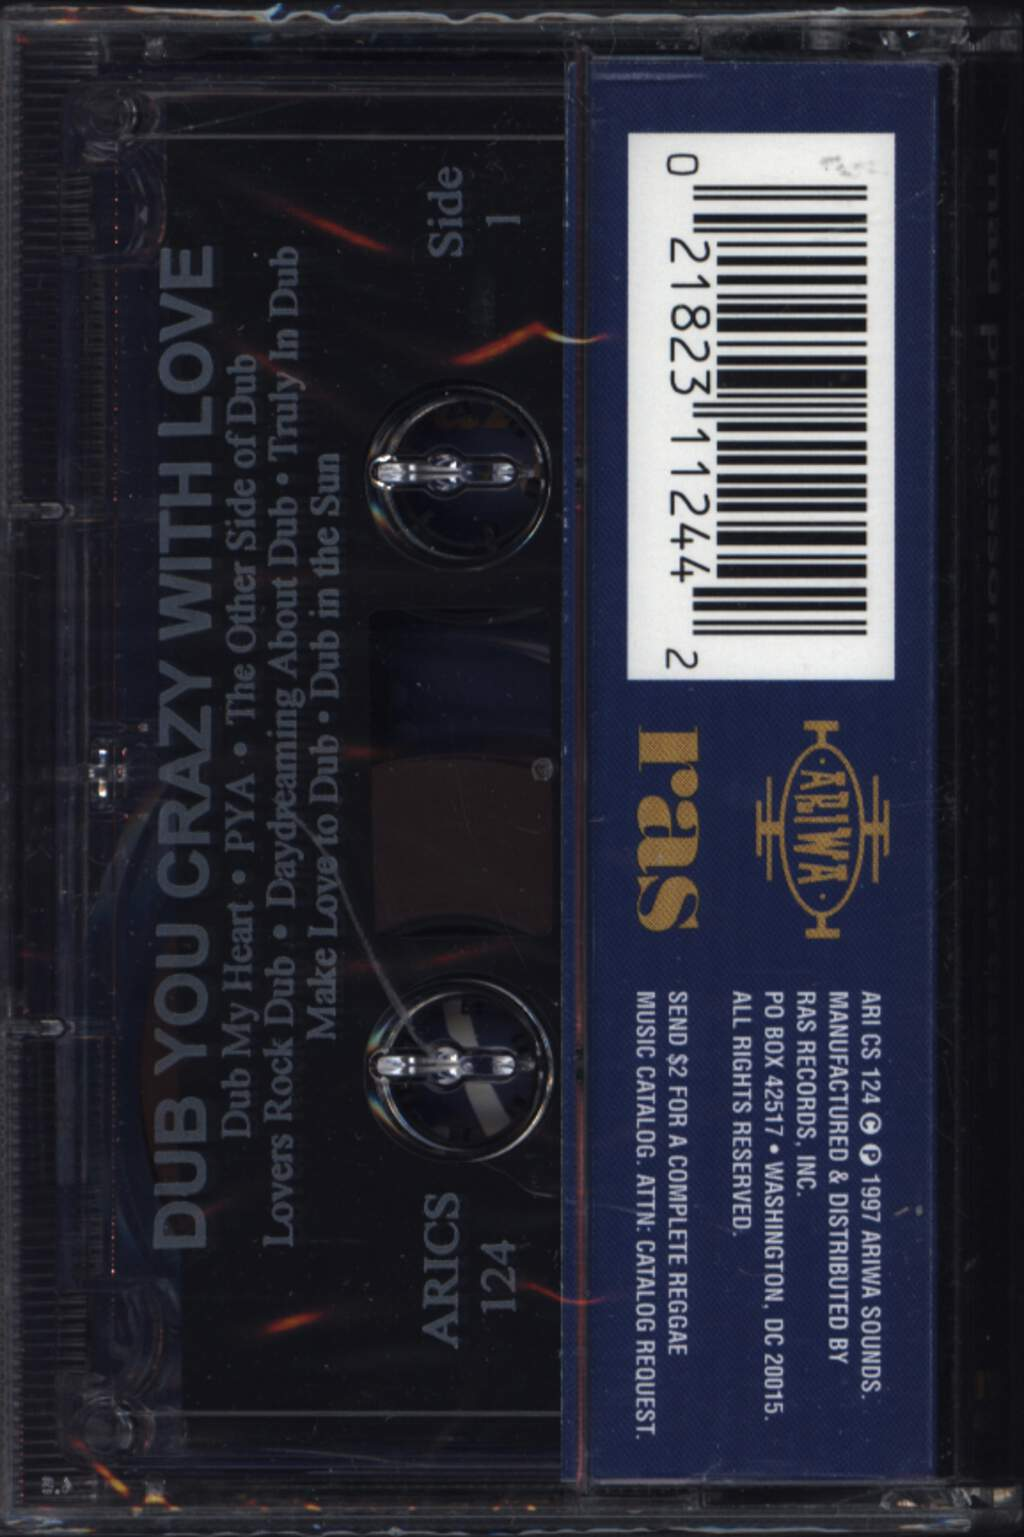 Mad Professor: Dub You Crazy With Love, Compact Cassette